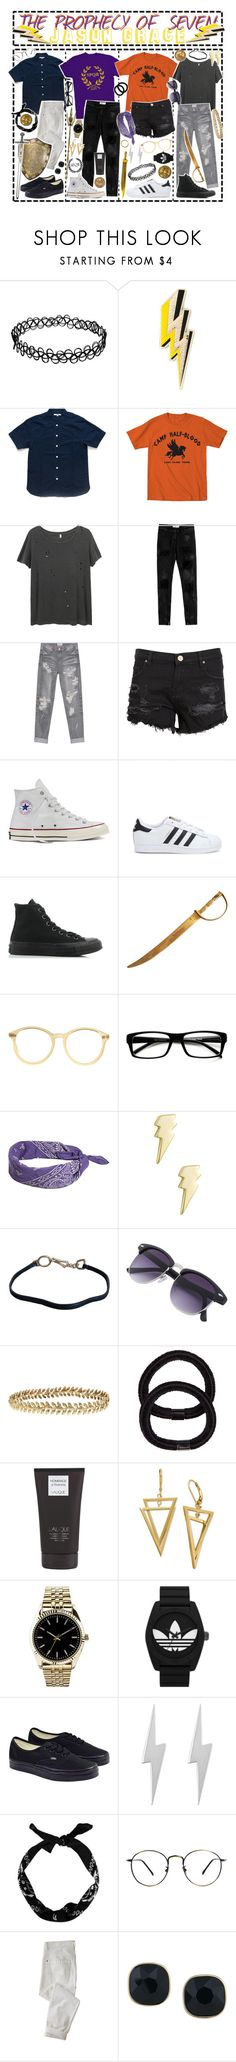 """""""- ̗̀ The Prophecy of Seven: Jason Grace  ̖́-"""" by i-get-a-little-bit-breathless ❤ liked on Polyvore featuring Anya Hindmarch, R13, Faith Connexion, OneTeaspoon, Zoe Karssen, Converse, adidas, American Apparel, ZeroUV and Jewel Exclusive"""